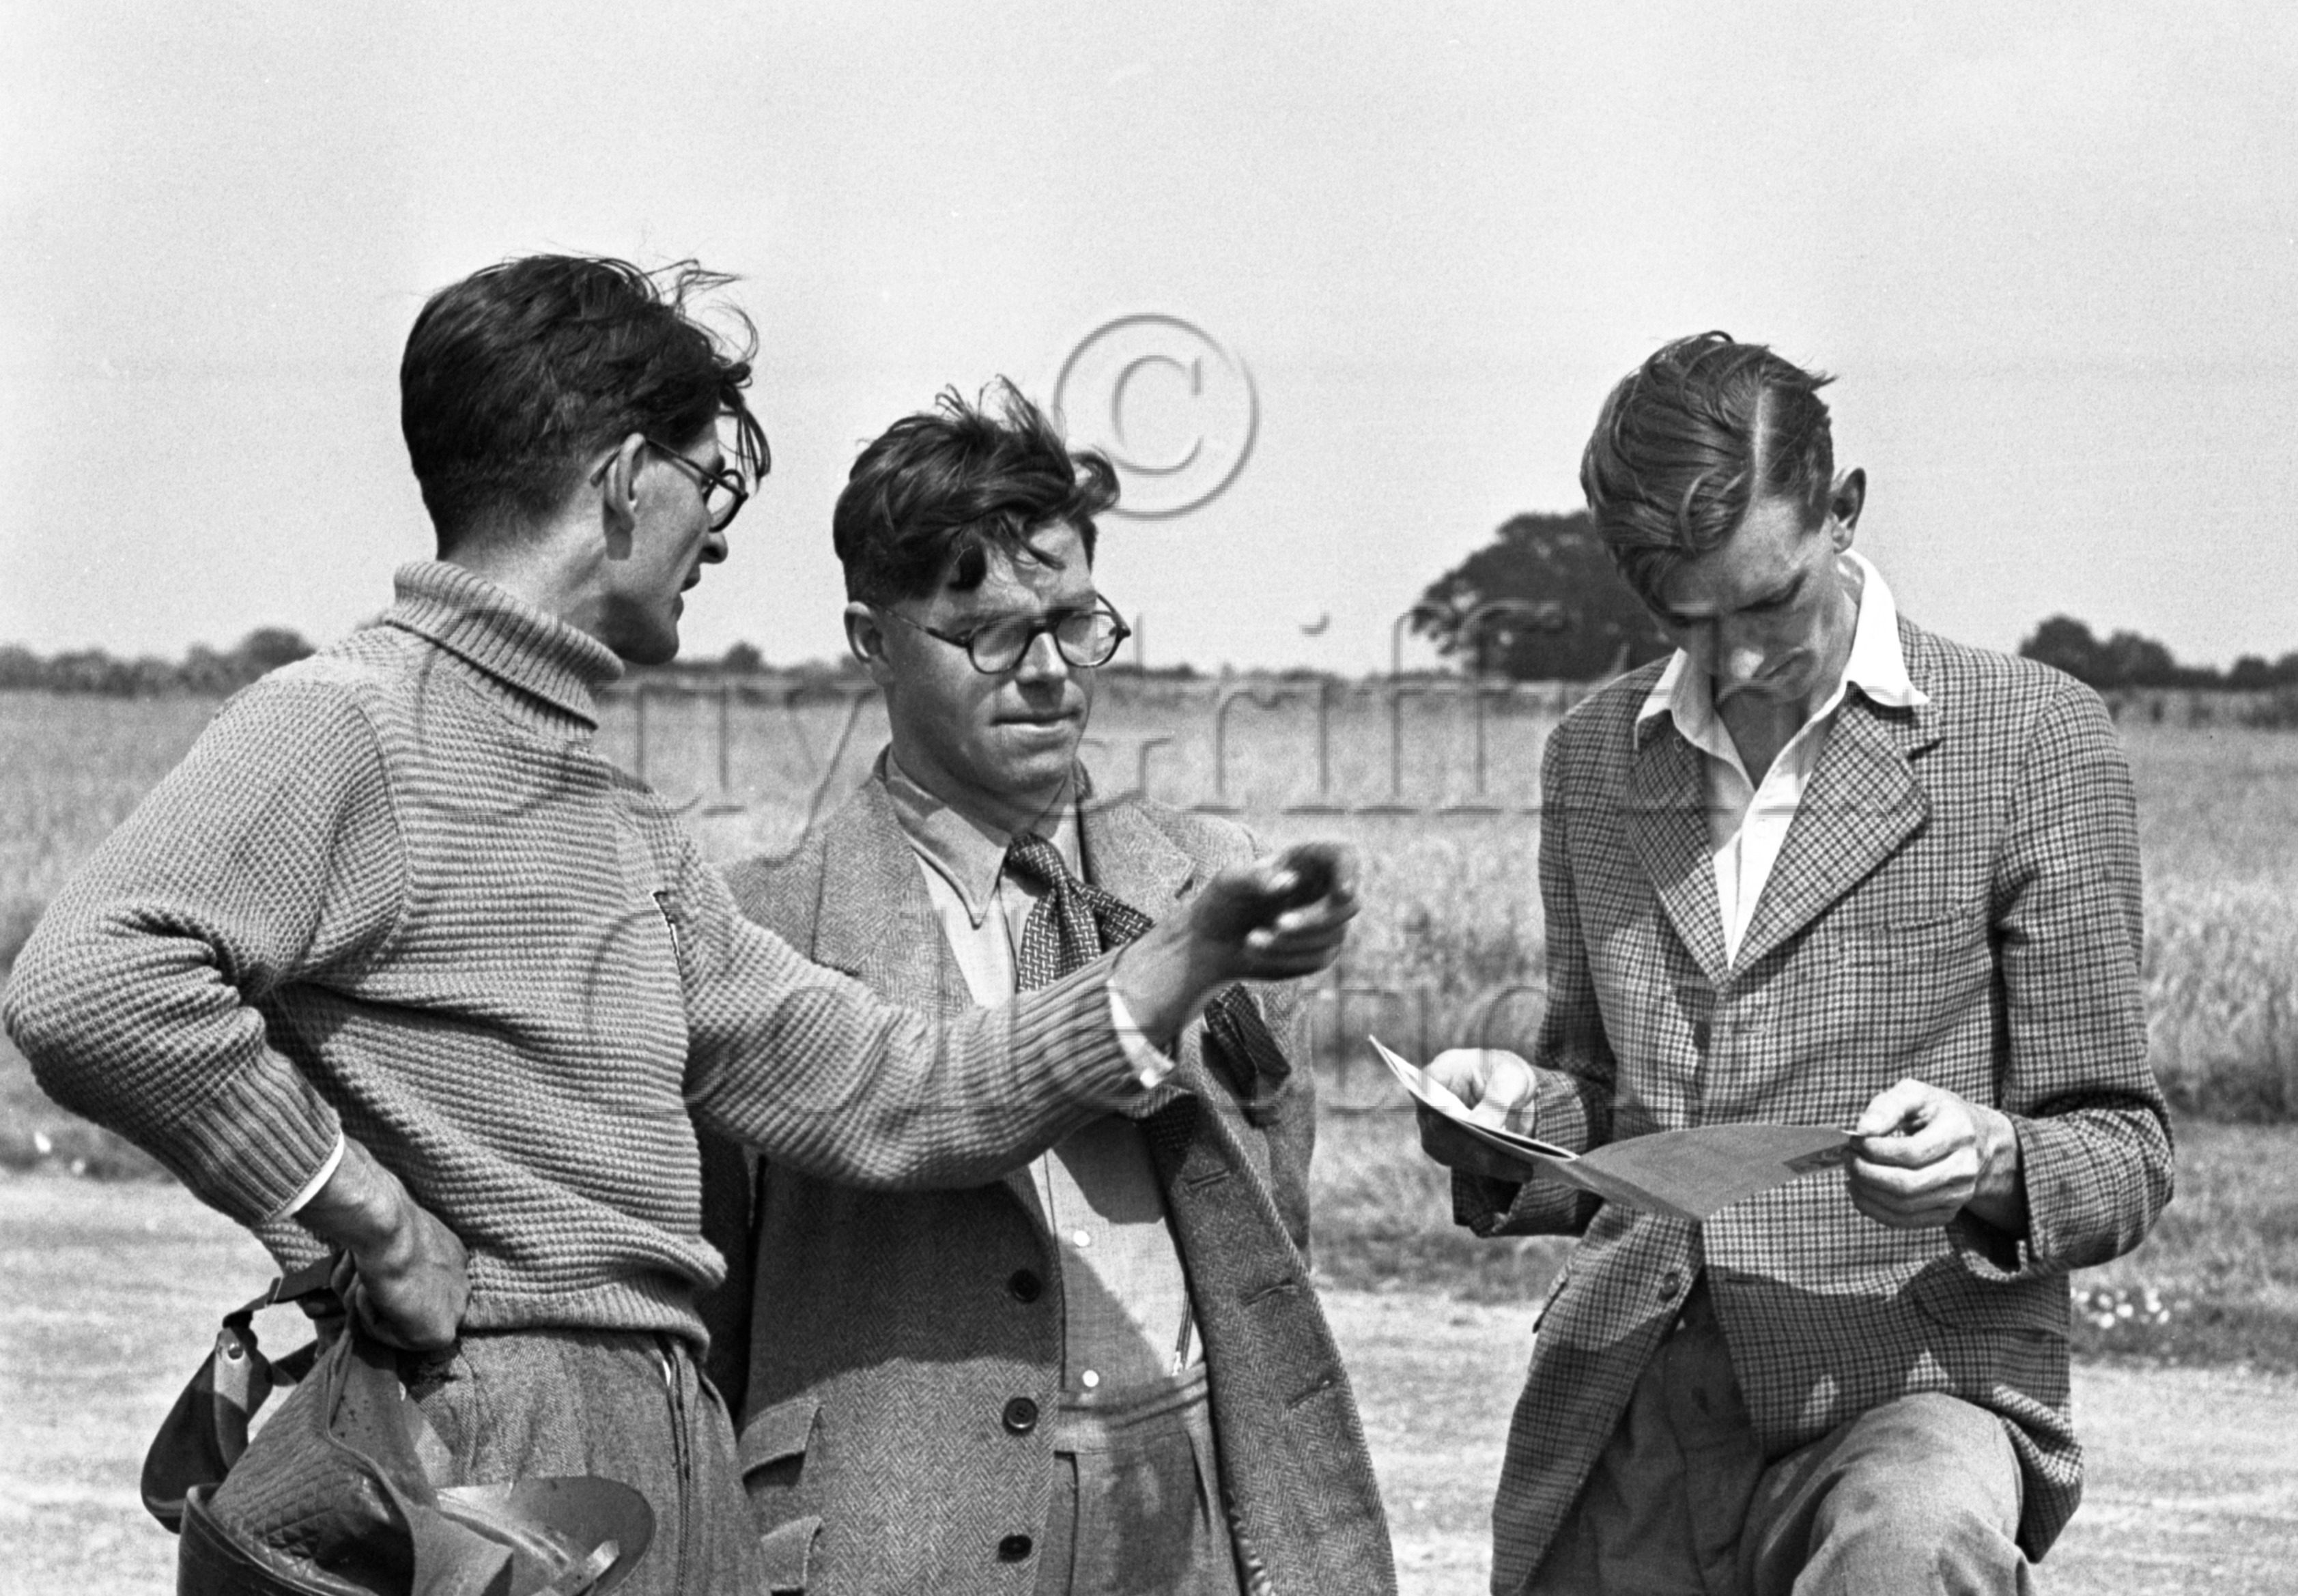 34-291–T-Crook–B-Boddy–Silverstone–28-07-1950.jpg - The Guy Griffiths Collection